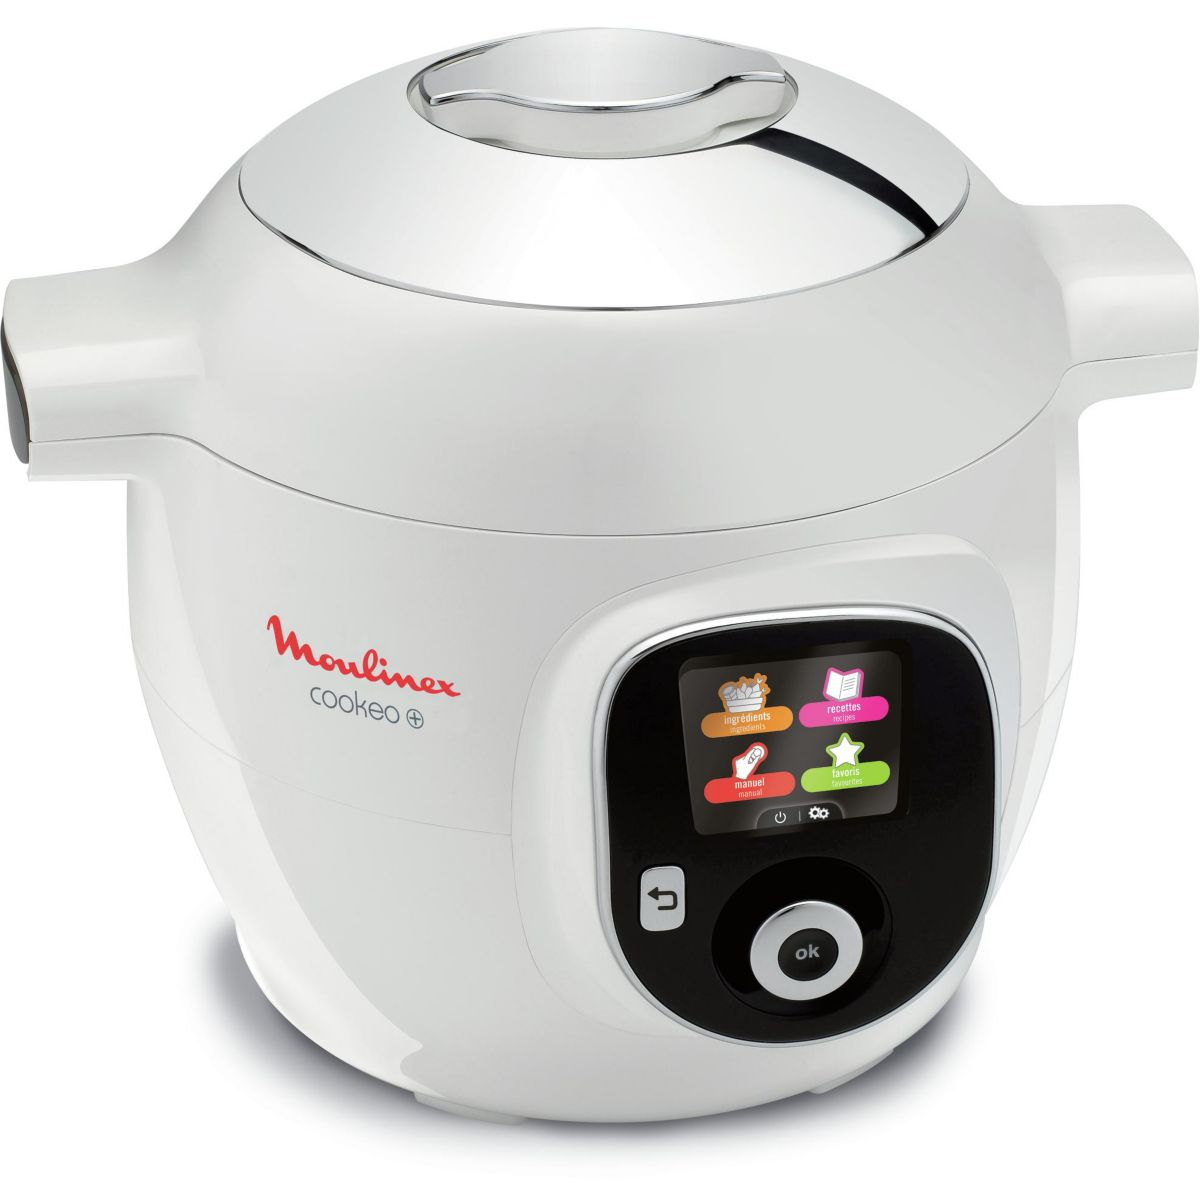 Cookeo MOULINEX Cookeo + Blanc 150 recettes CE851100